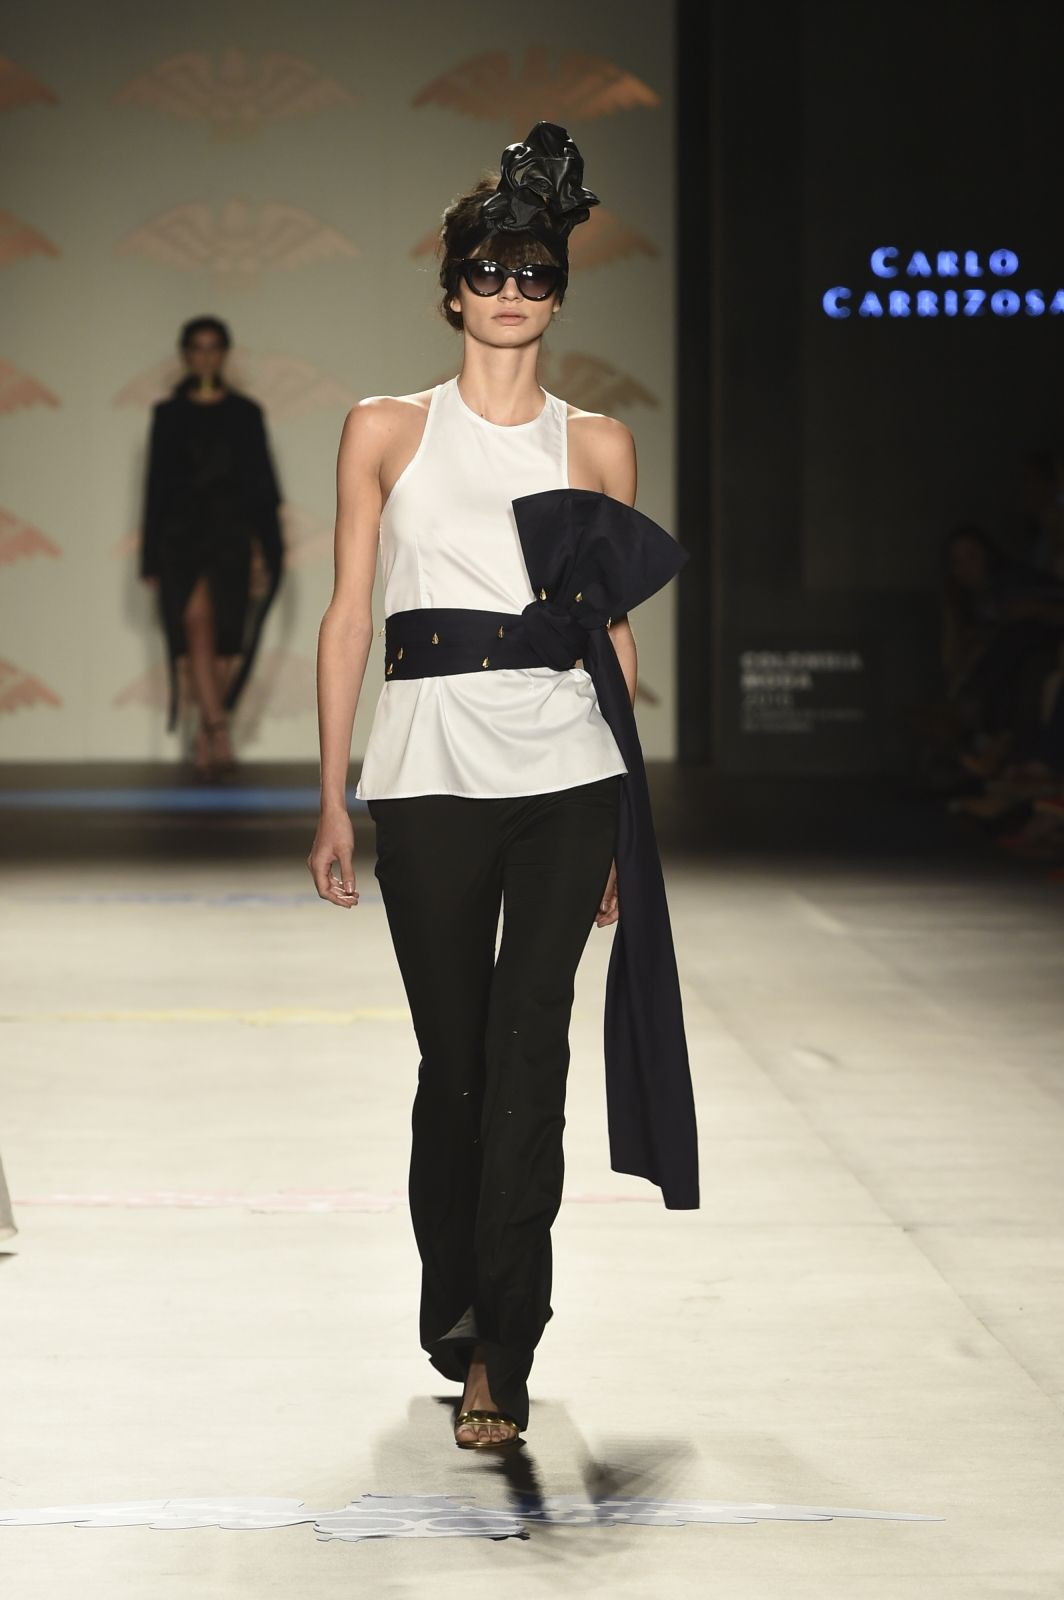 Free collection by Carlo Carrizosa Colombiamoda 2016